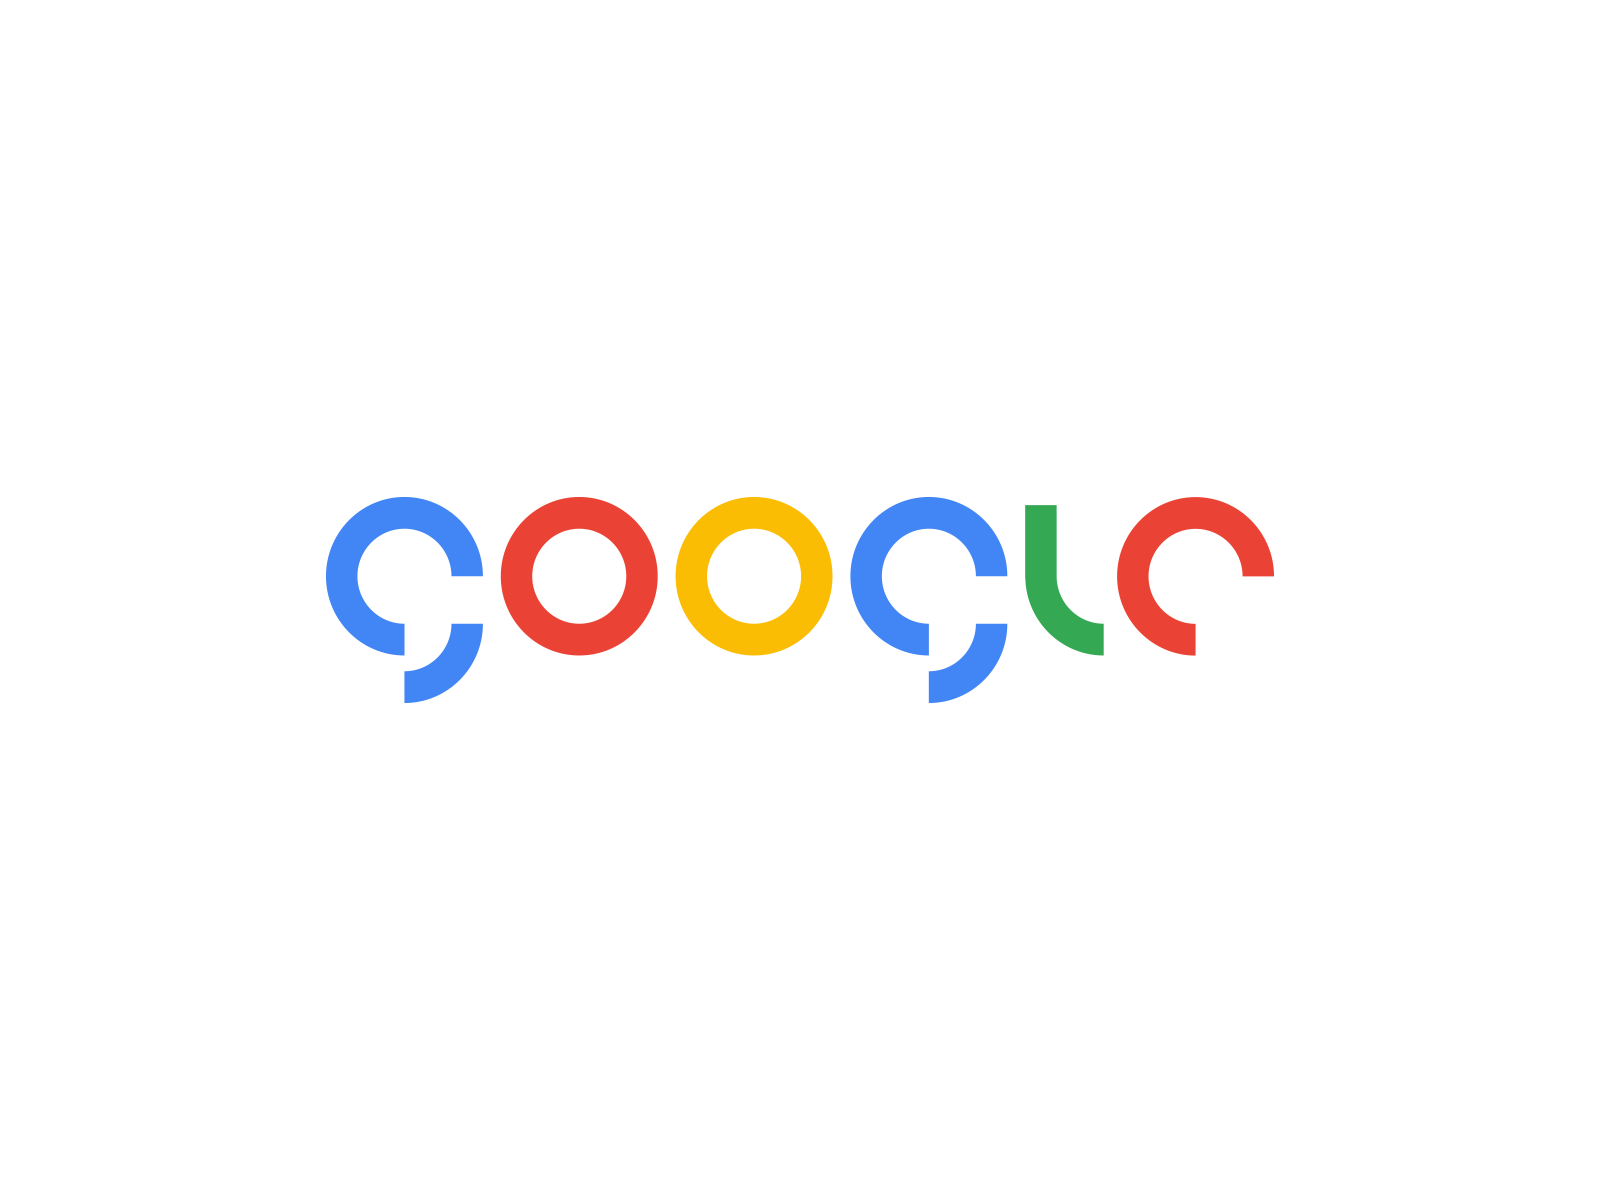 Google re-design idea